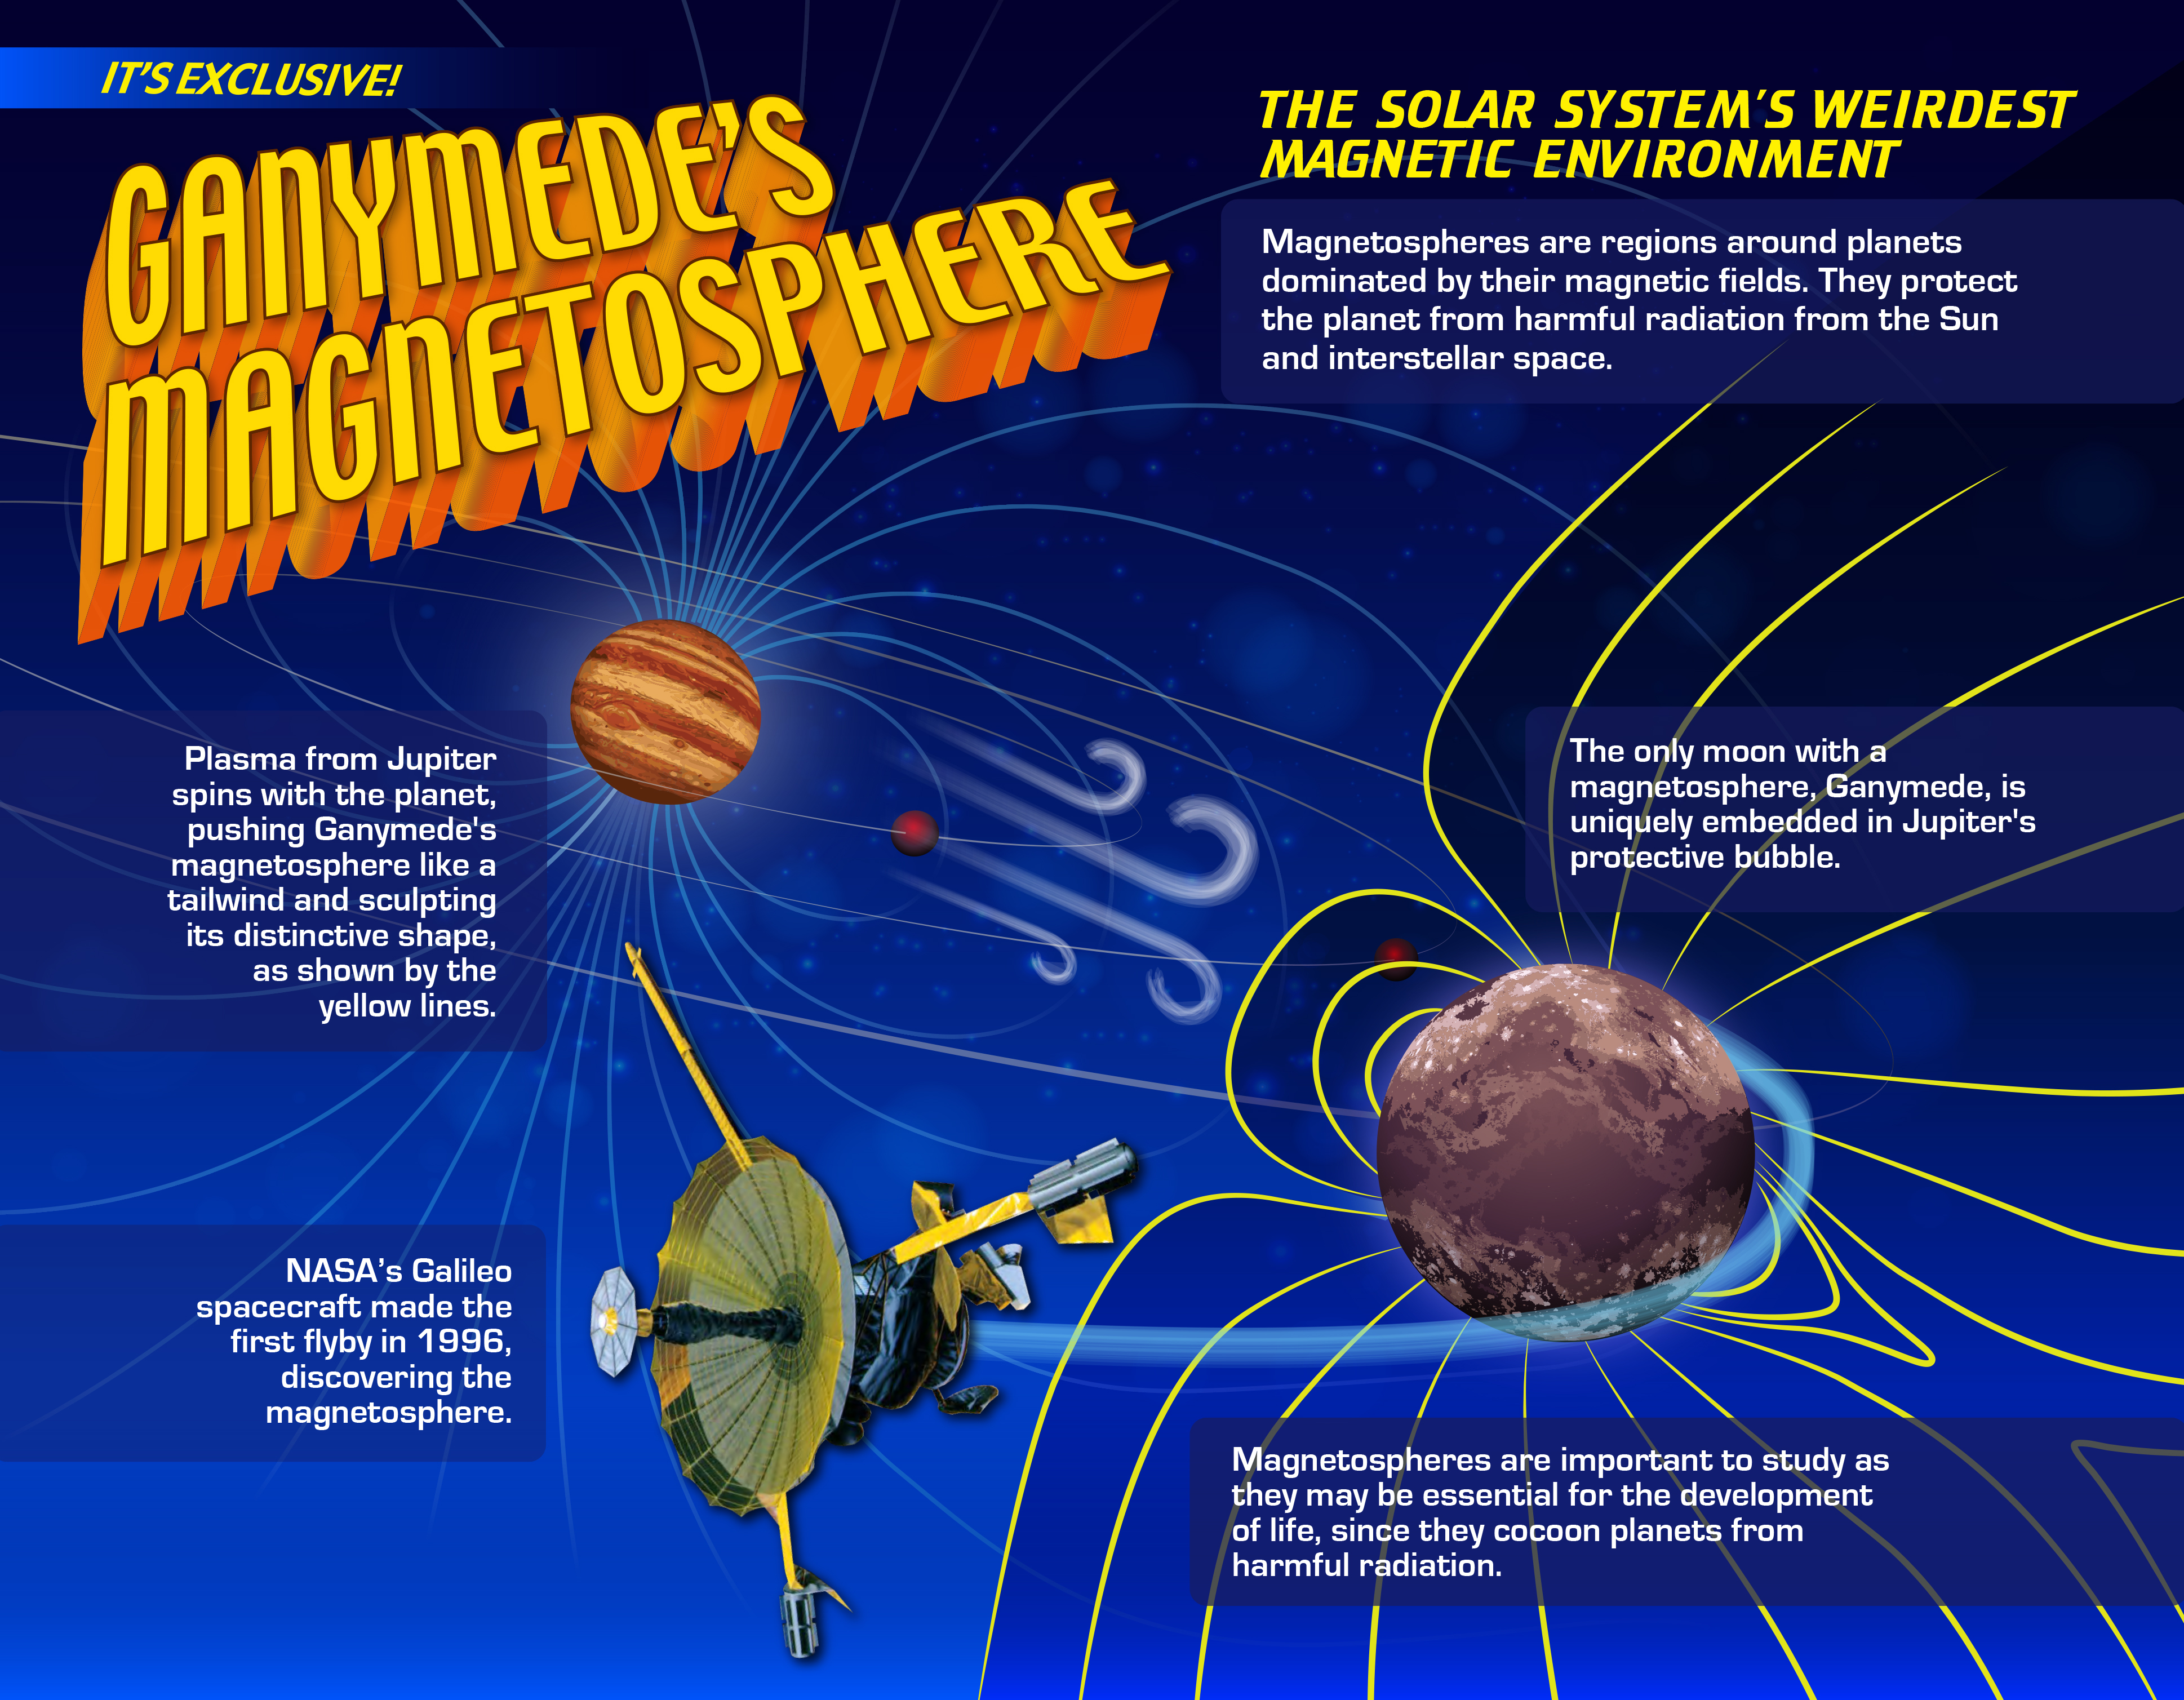 infographic of the magnetosphere of ganymede